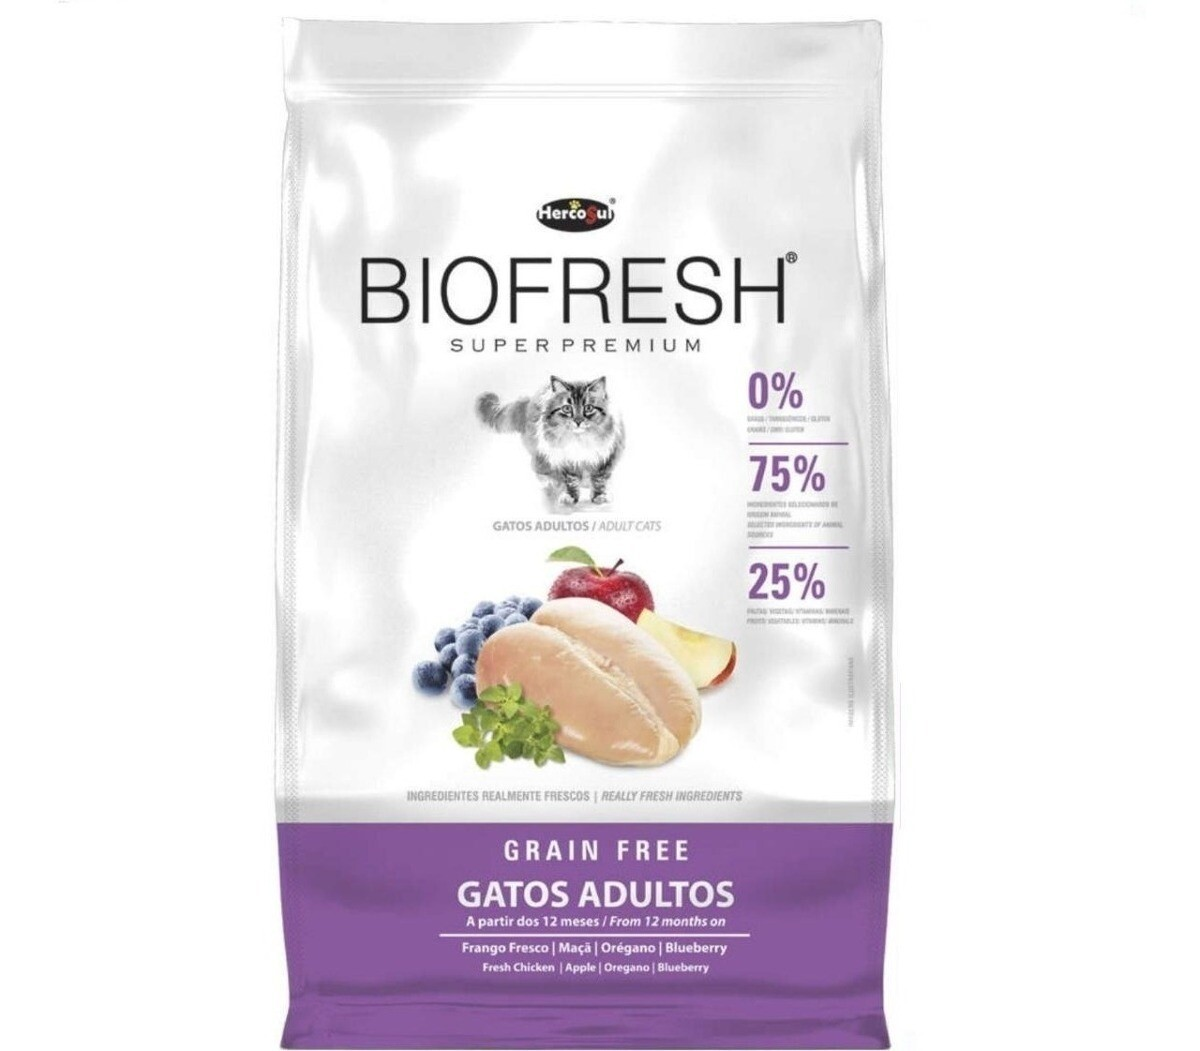 Biofresh Gato Adulto 1.5 Kilos